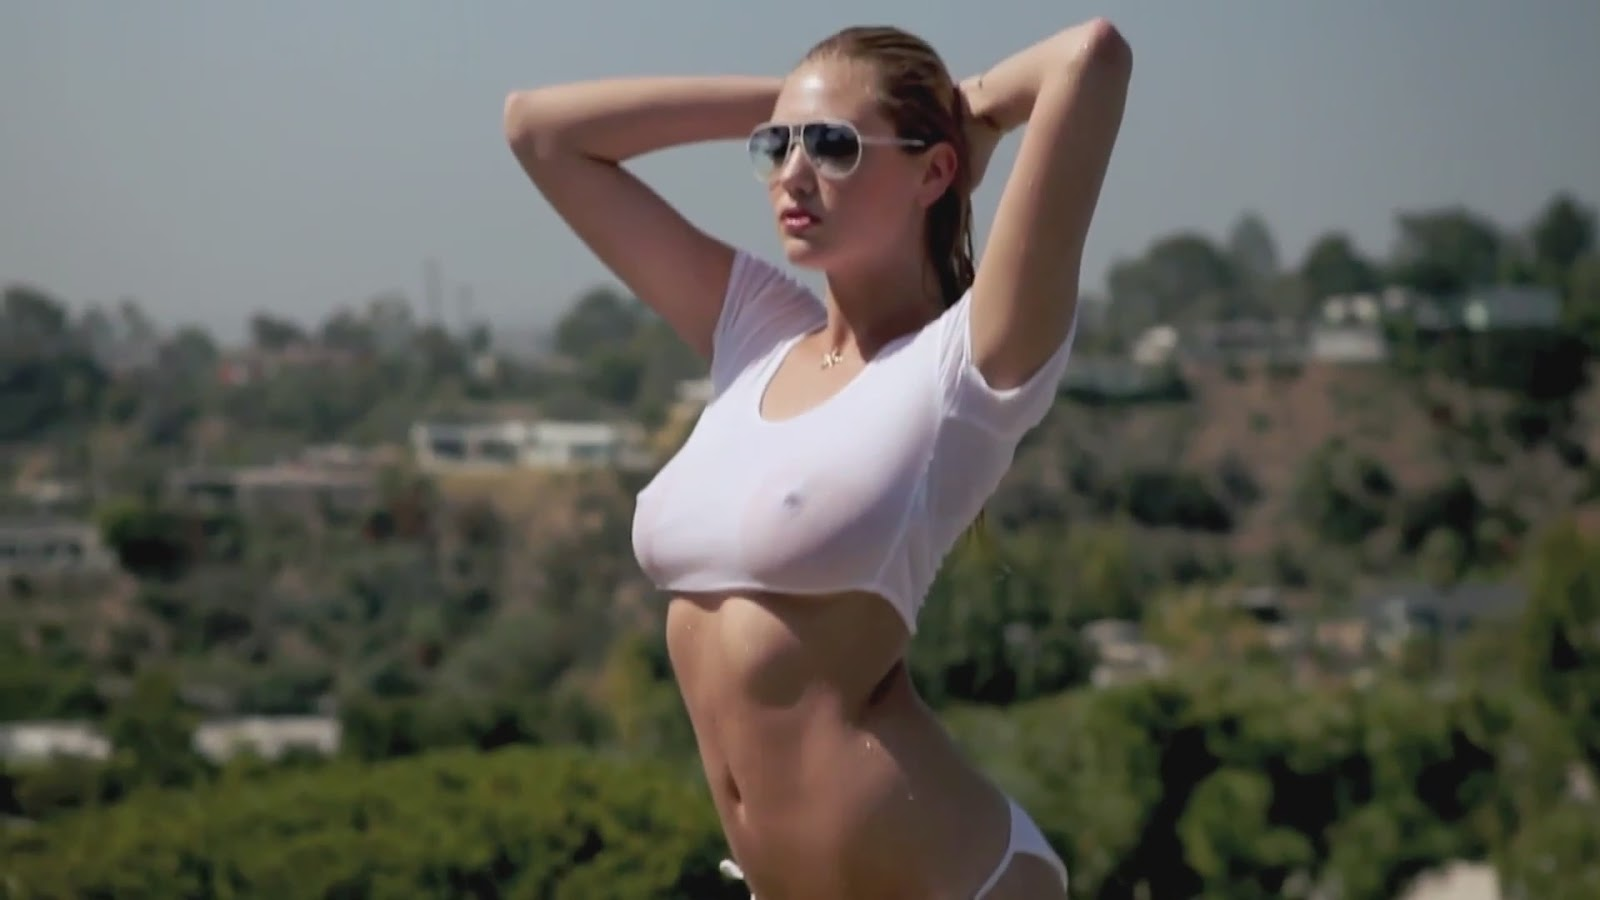 Kate Upton GQ July 2012 Wet T-Shirt / Bikini 1080p Video and Pictures